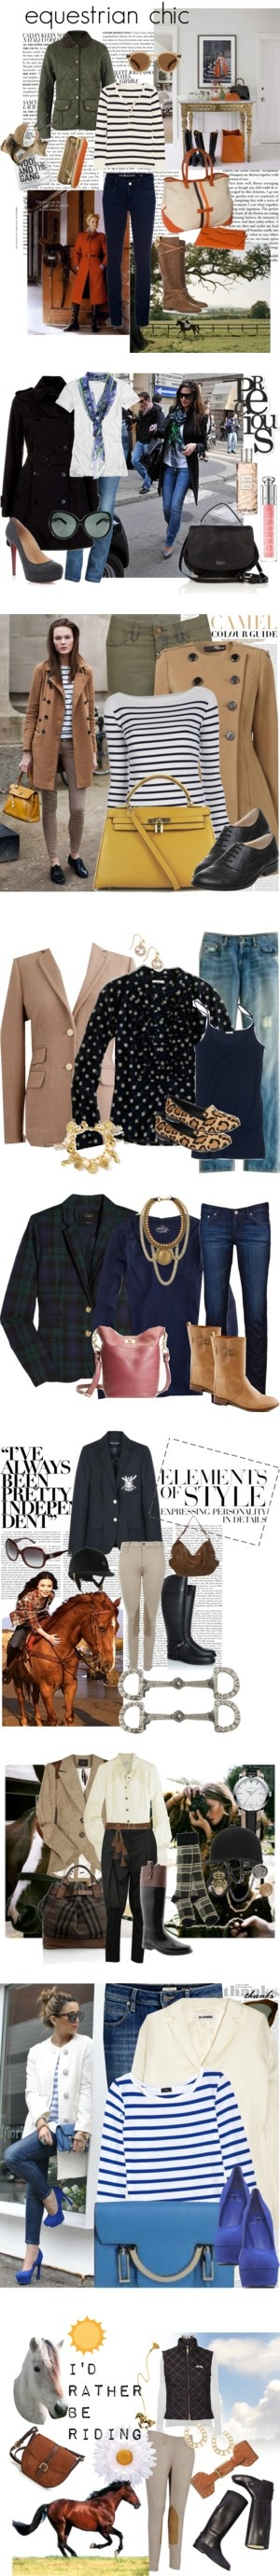 """Equestrian"" by laurabankslewis on Polyvore"